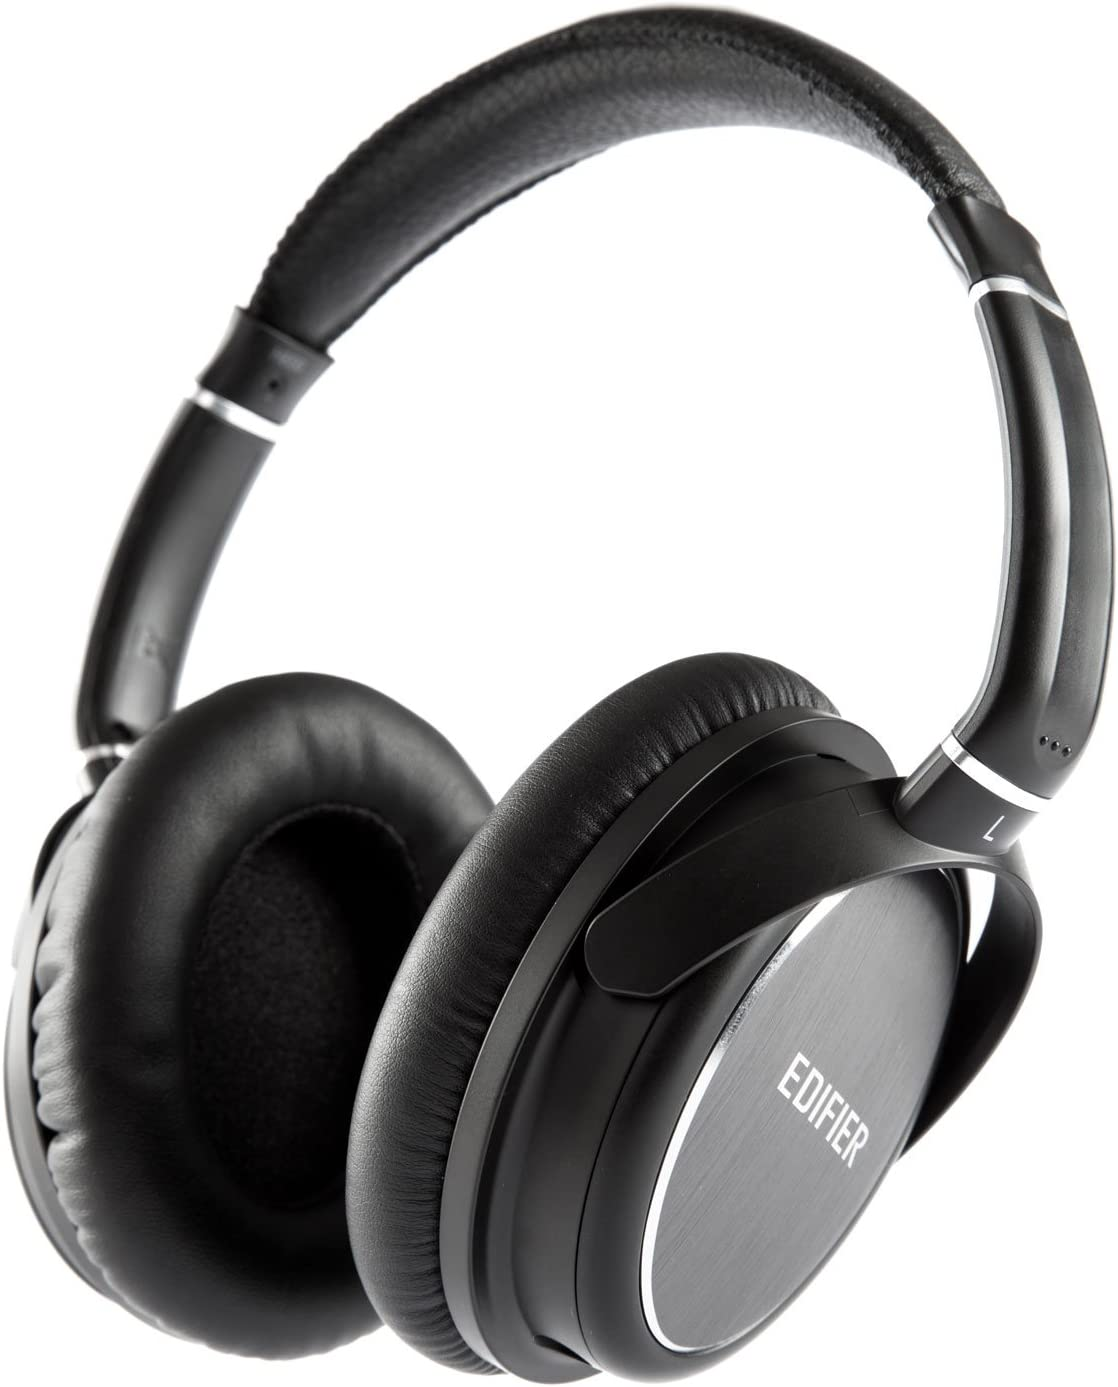 Edifier H850 Over-The-Ear Pro Headphones - Professional Audiophile Headphone